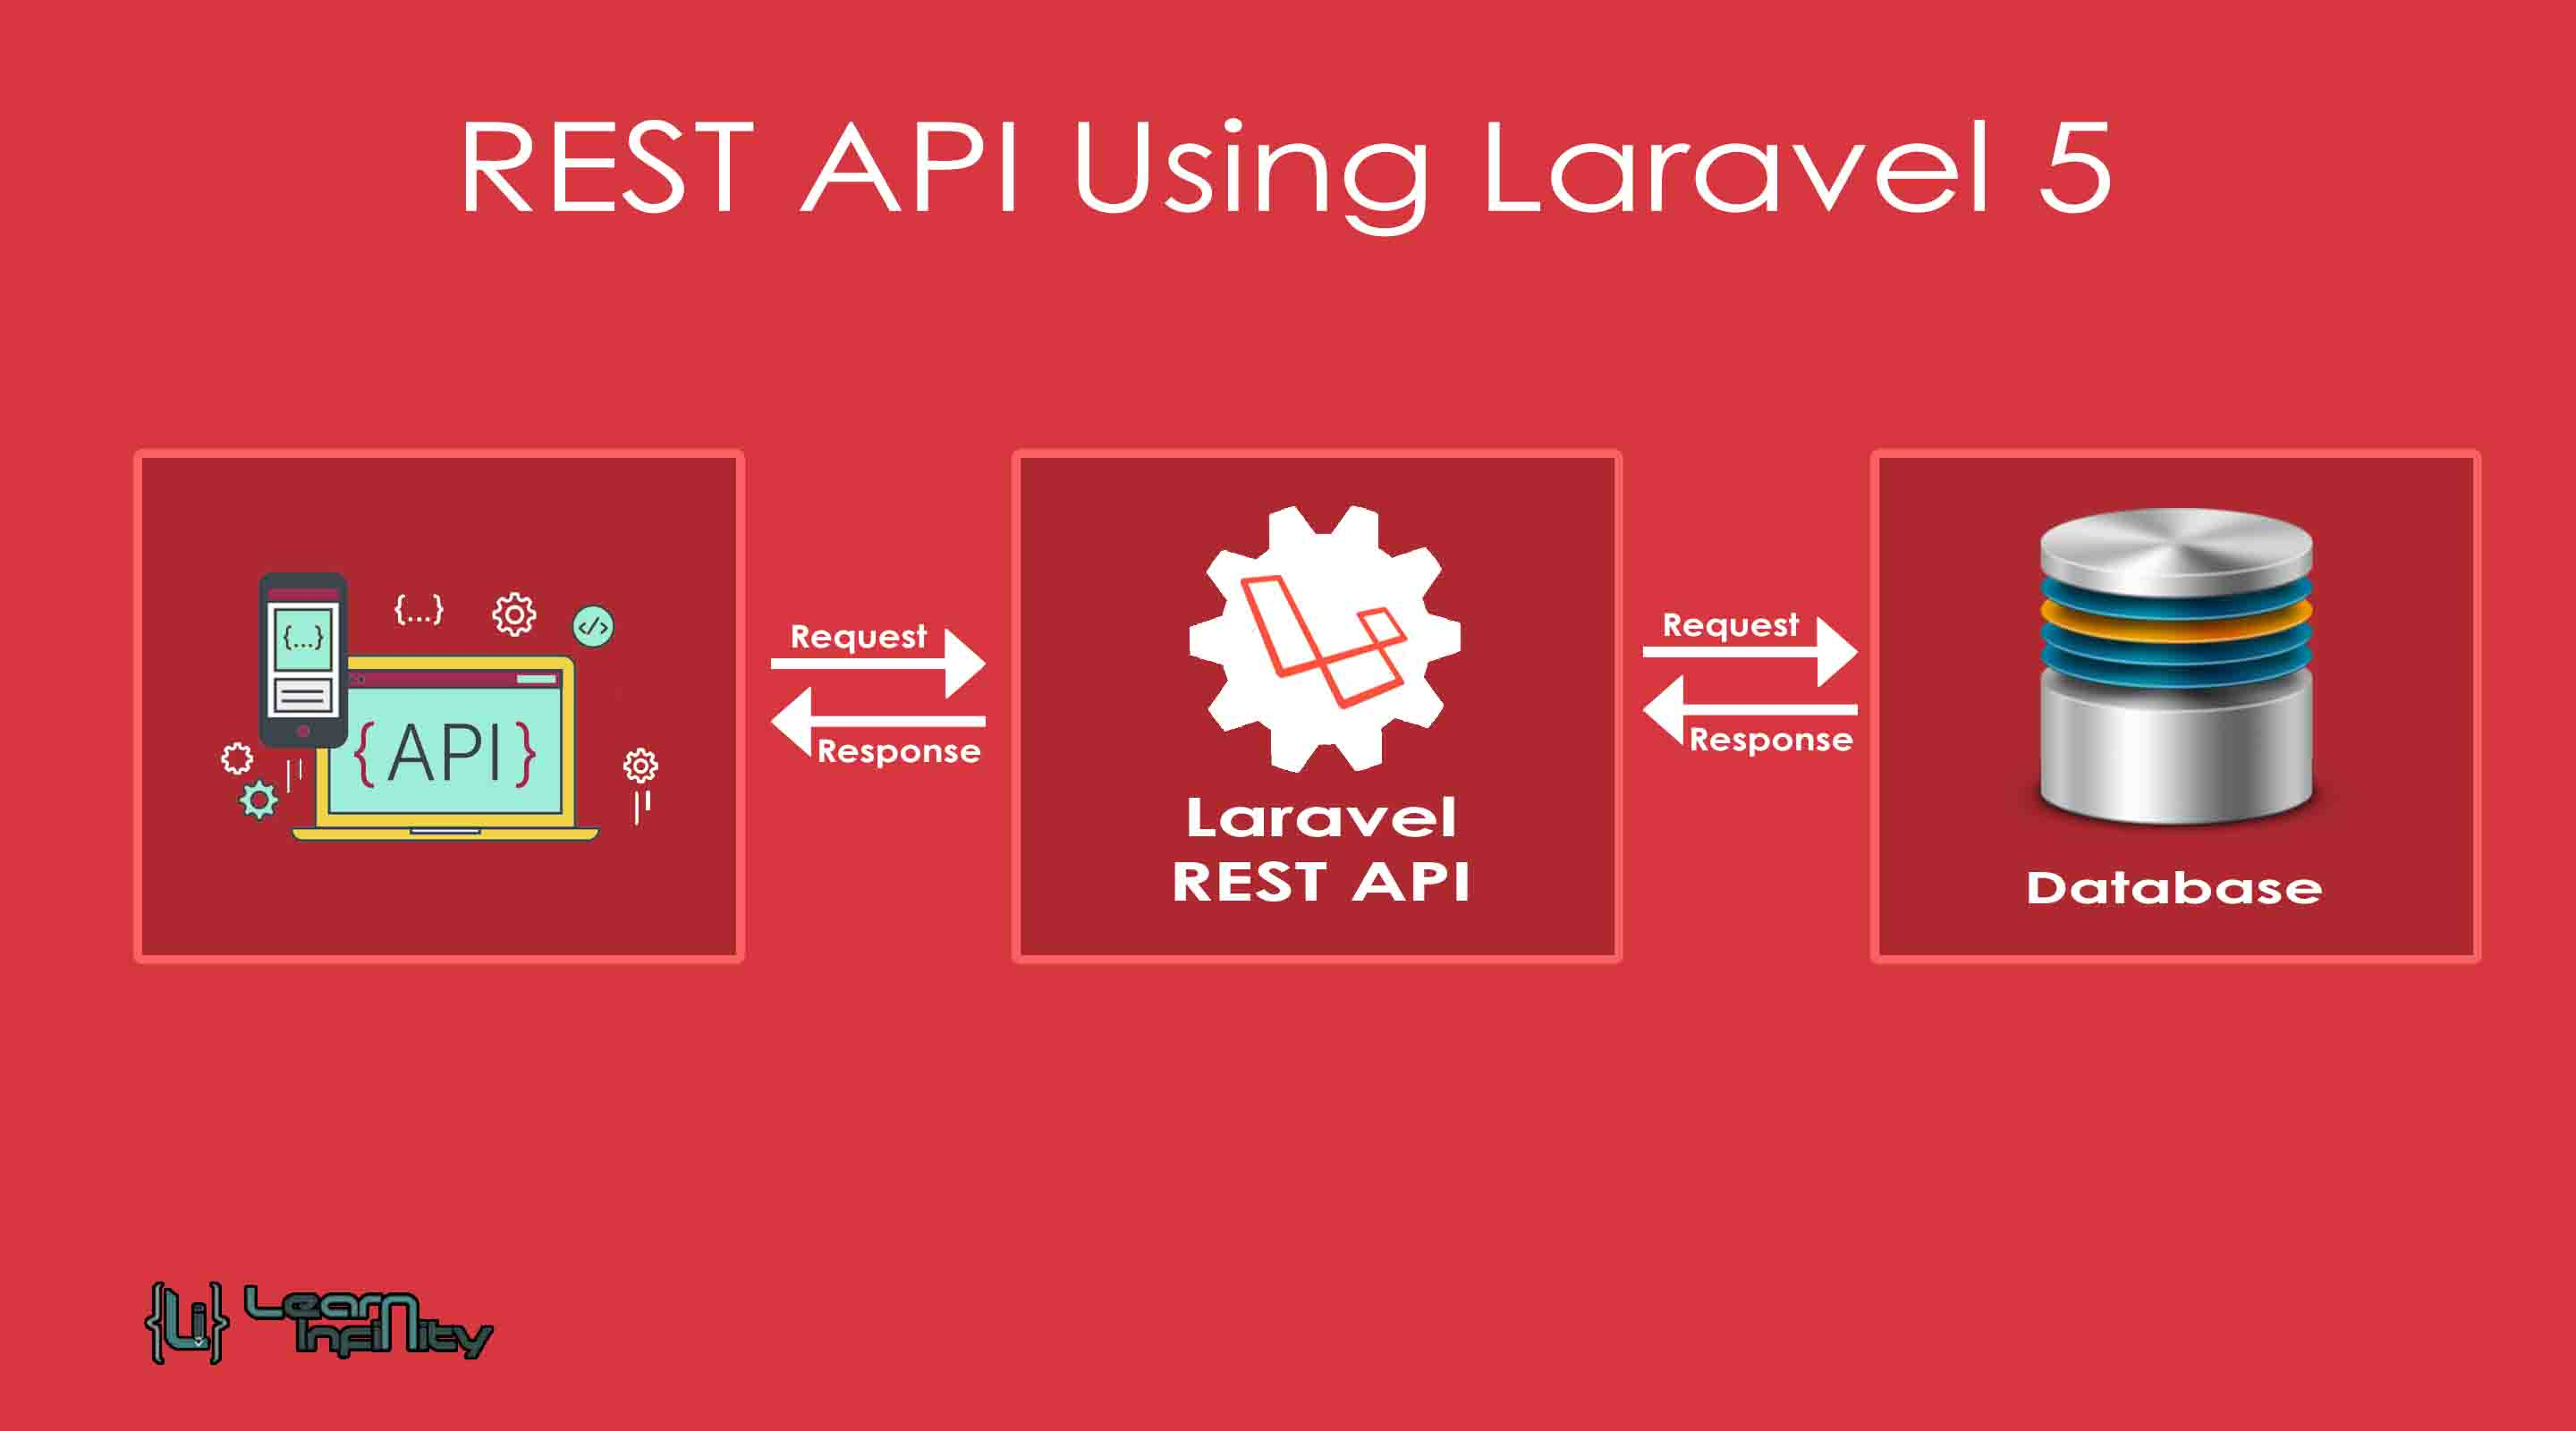 REST API Using Laravel 5